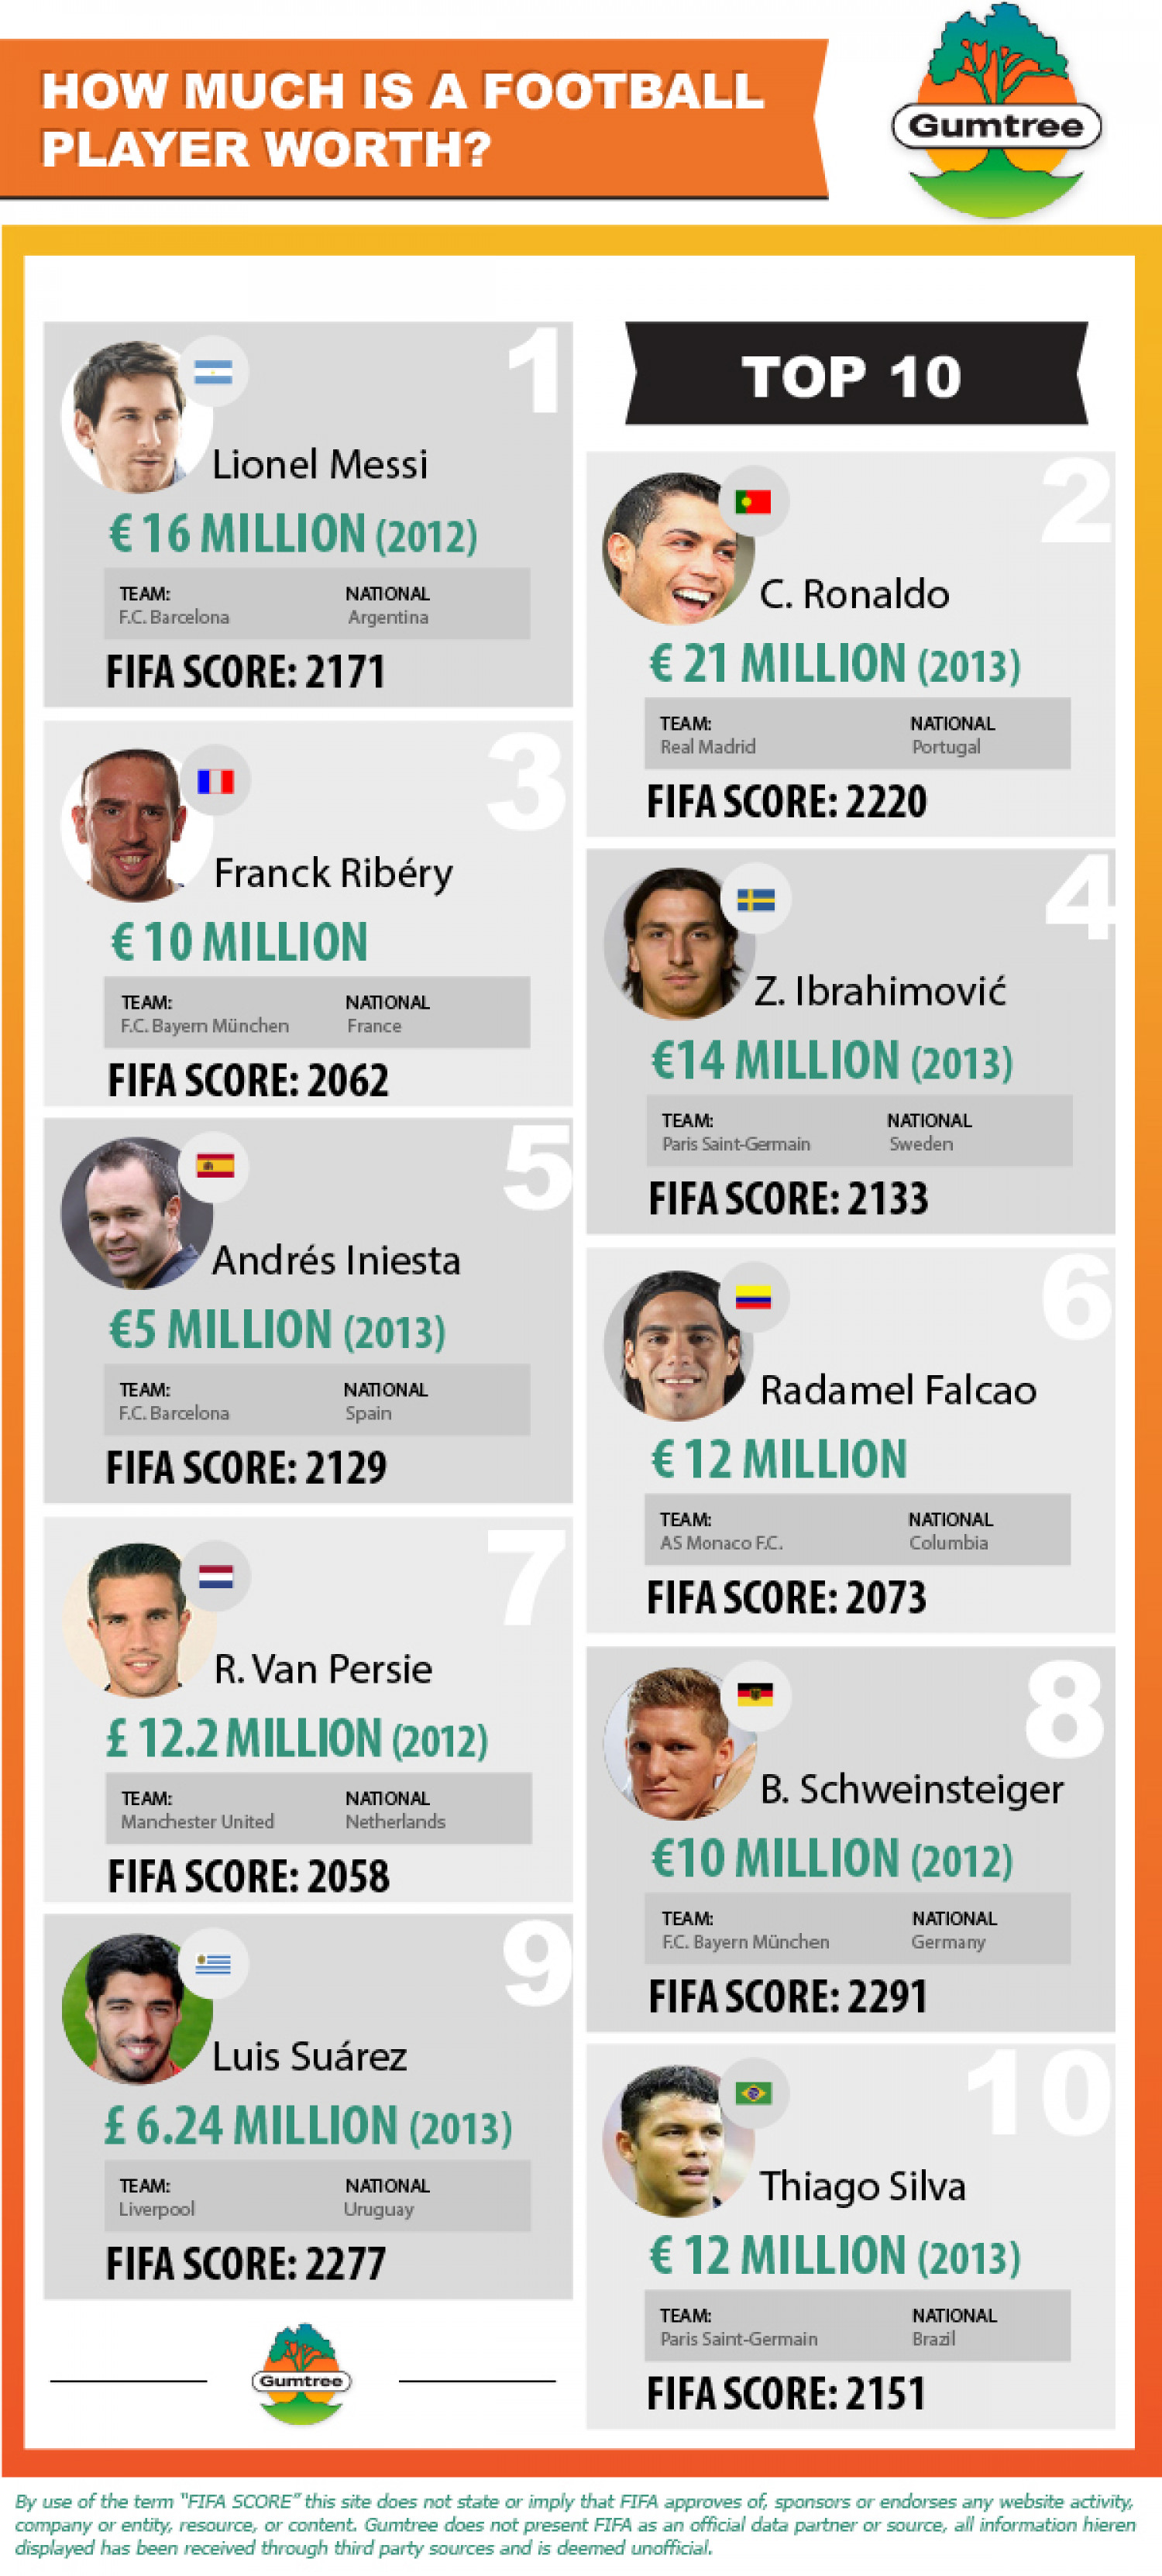 How Much Is a Football Player Worth? Infographic